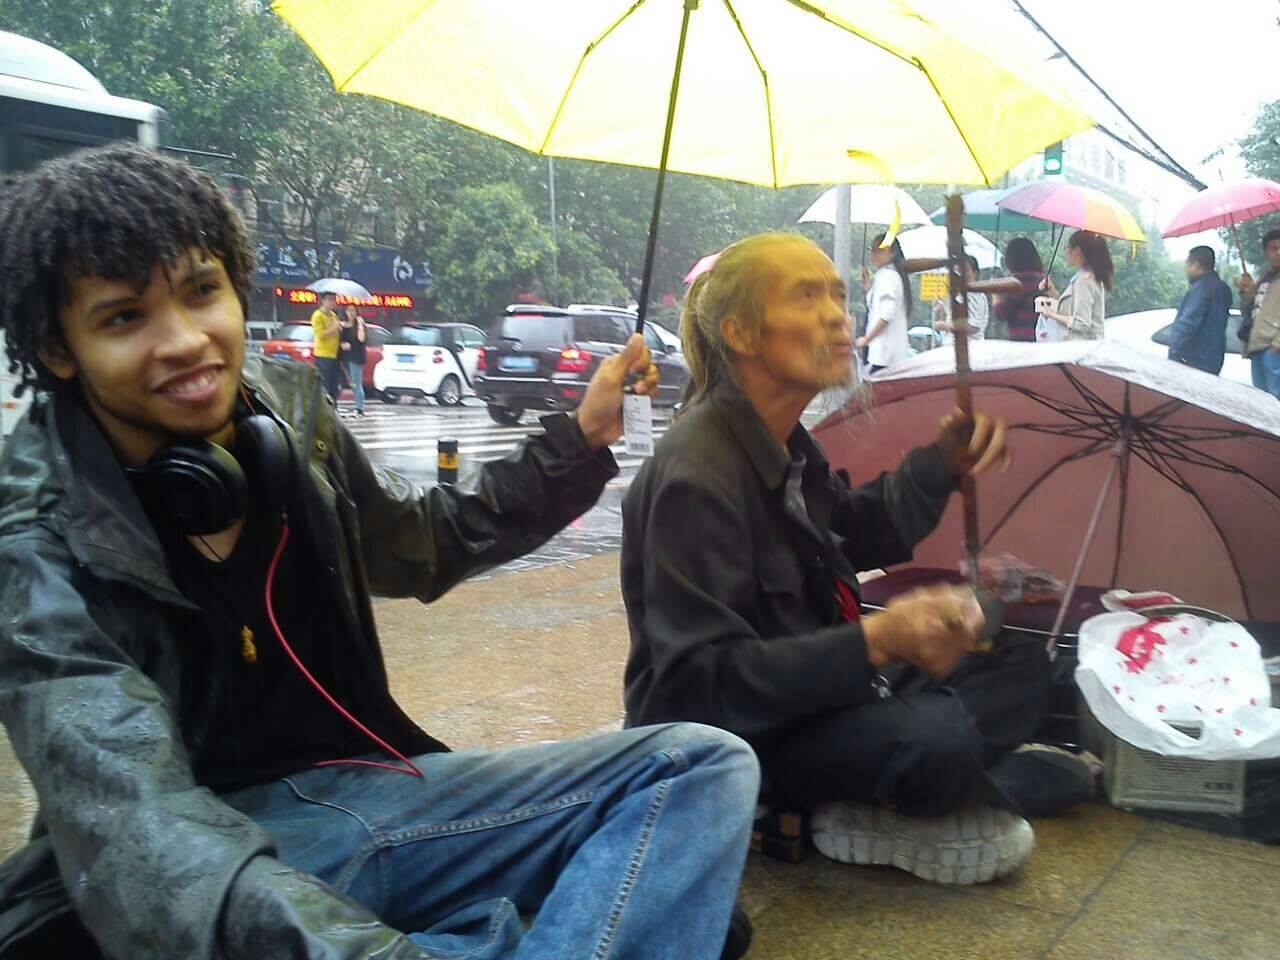 Shielding a homeless man from the rain as he busked on the street in Xi'an, China.